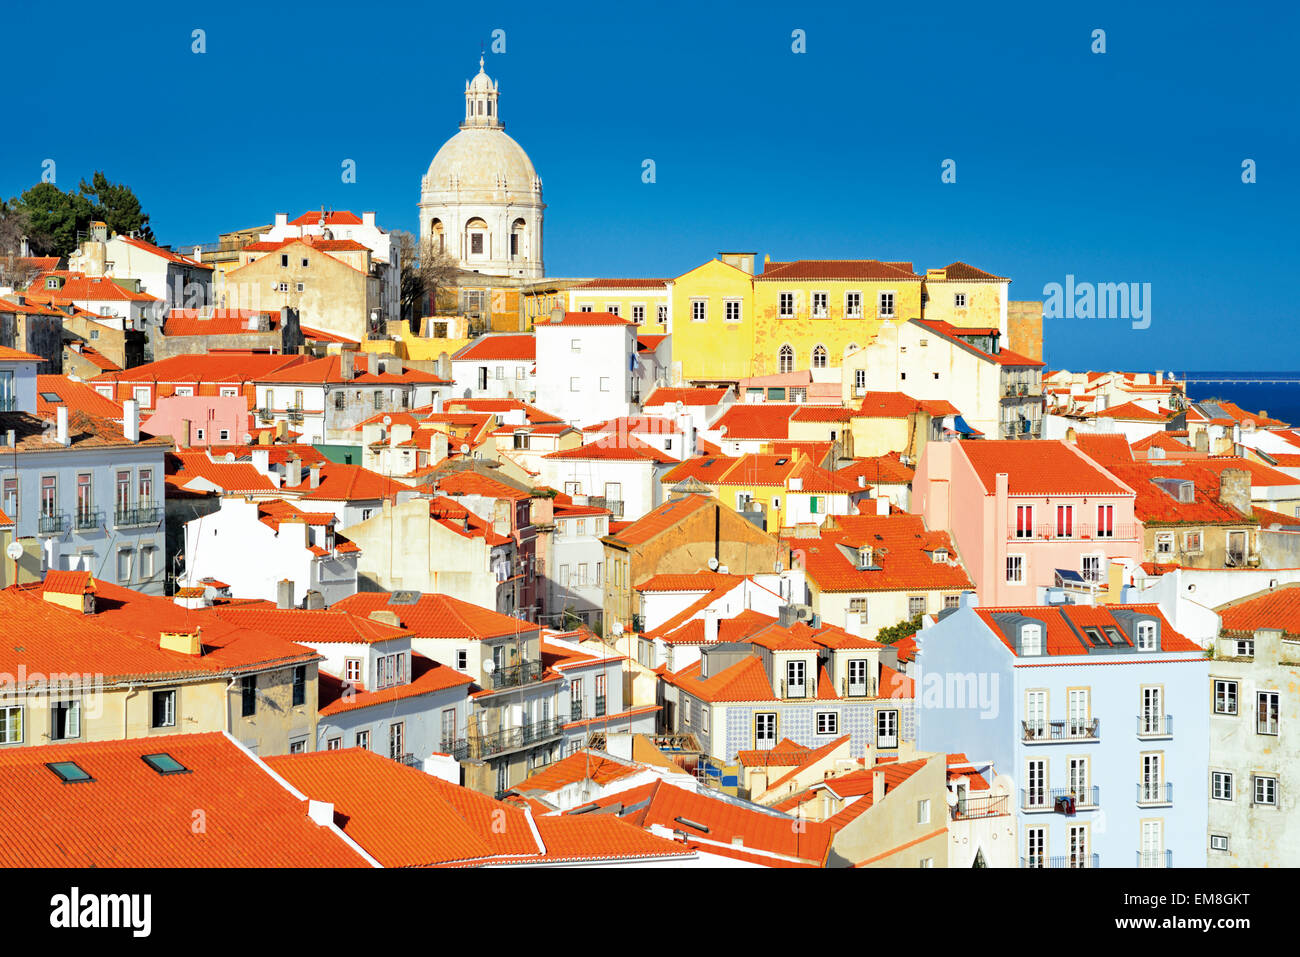 Portugal, Lisbon: View over the rooftops of old Lisbon and Tagus river from Miradouro Portas do Sol in Alfama - Stock Image